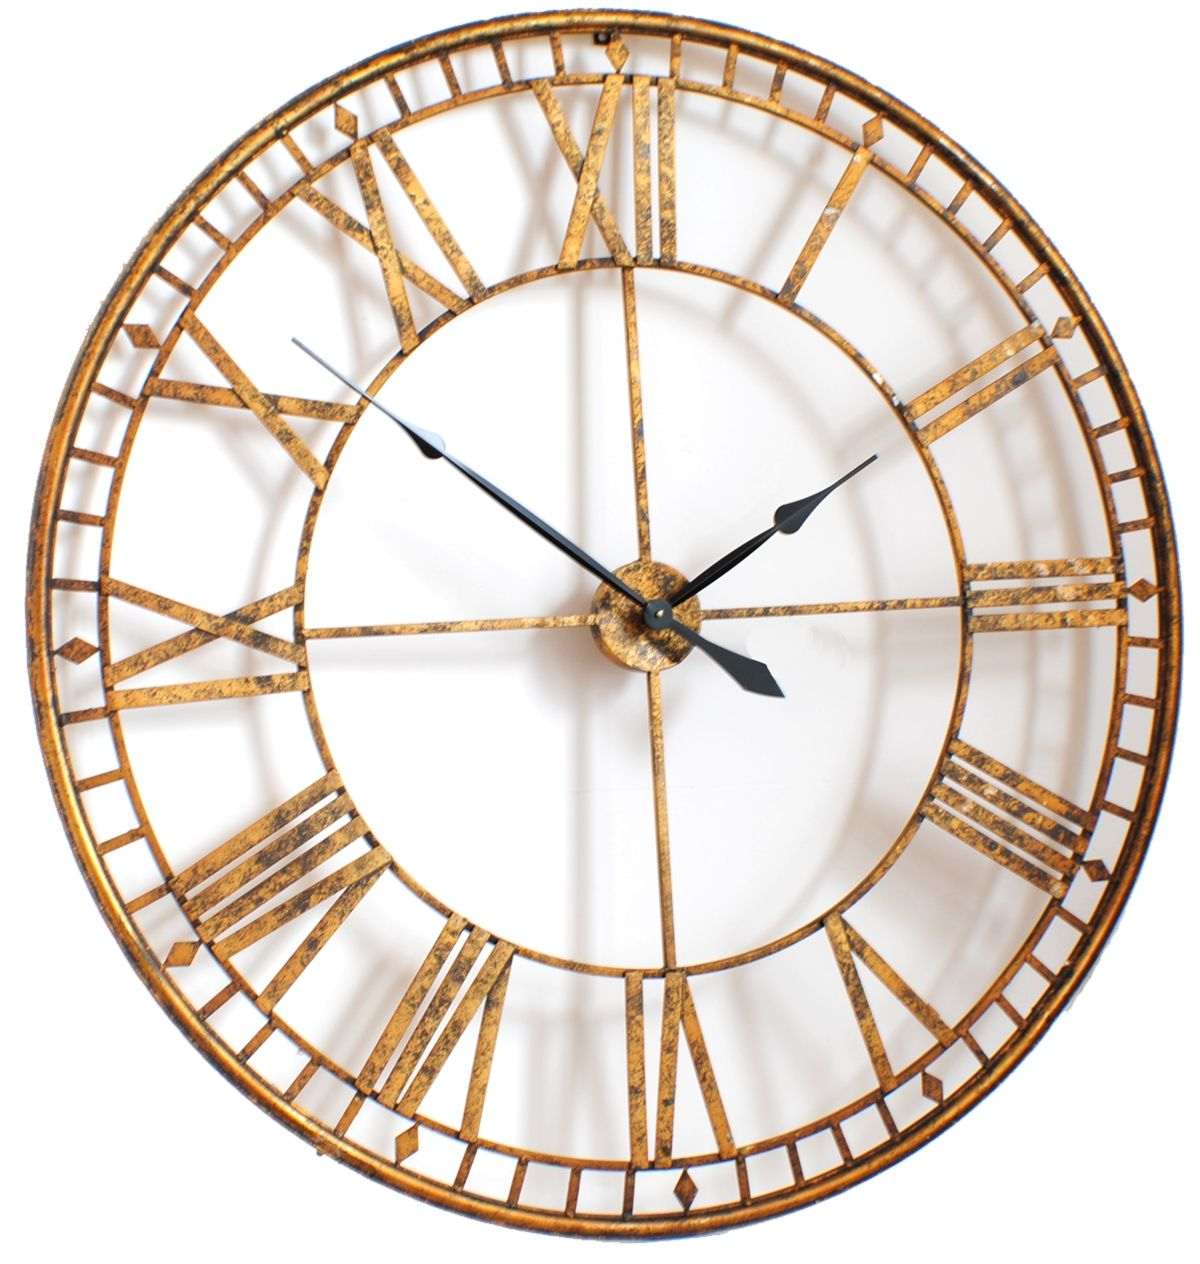 Another Antique Style Roman Large Skeleton Vintage Wall Clock Which Features Gold And Black Finish At Contemporary Heaven